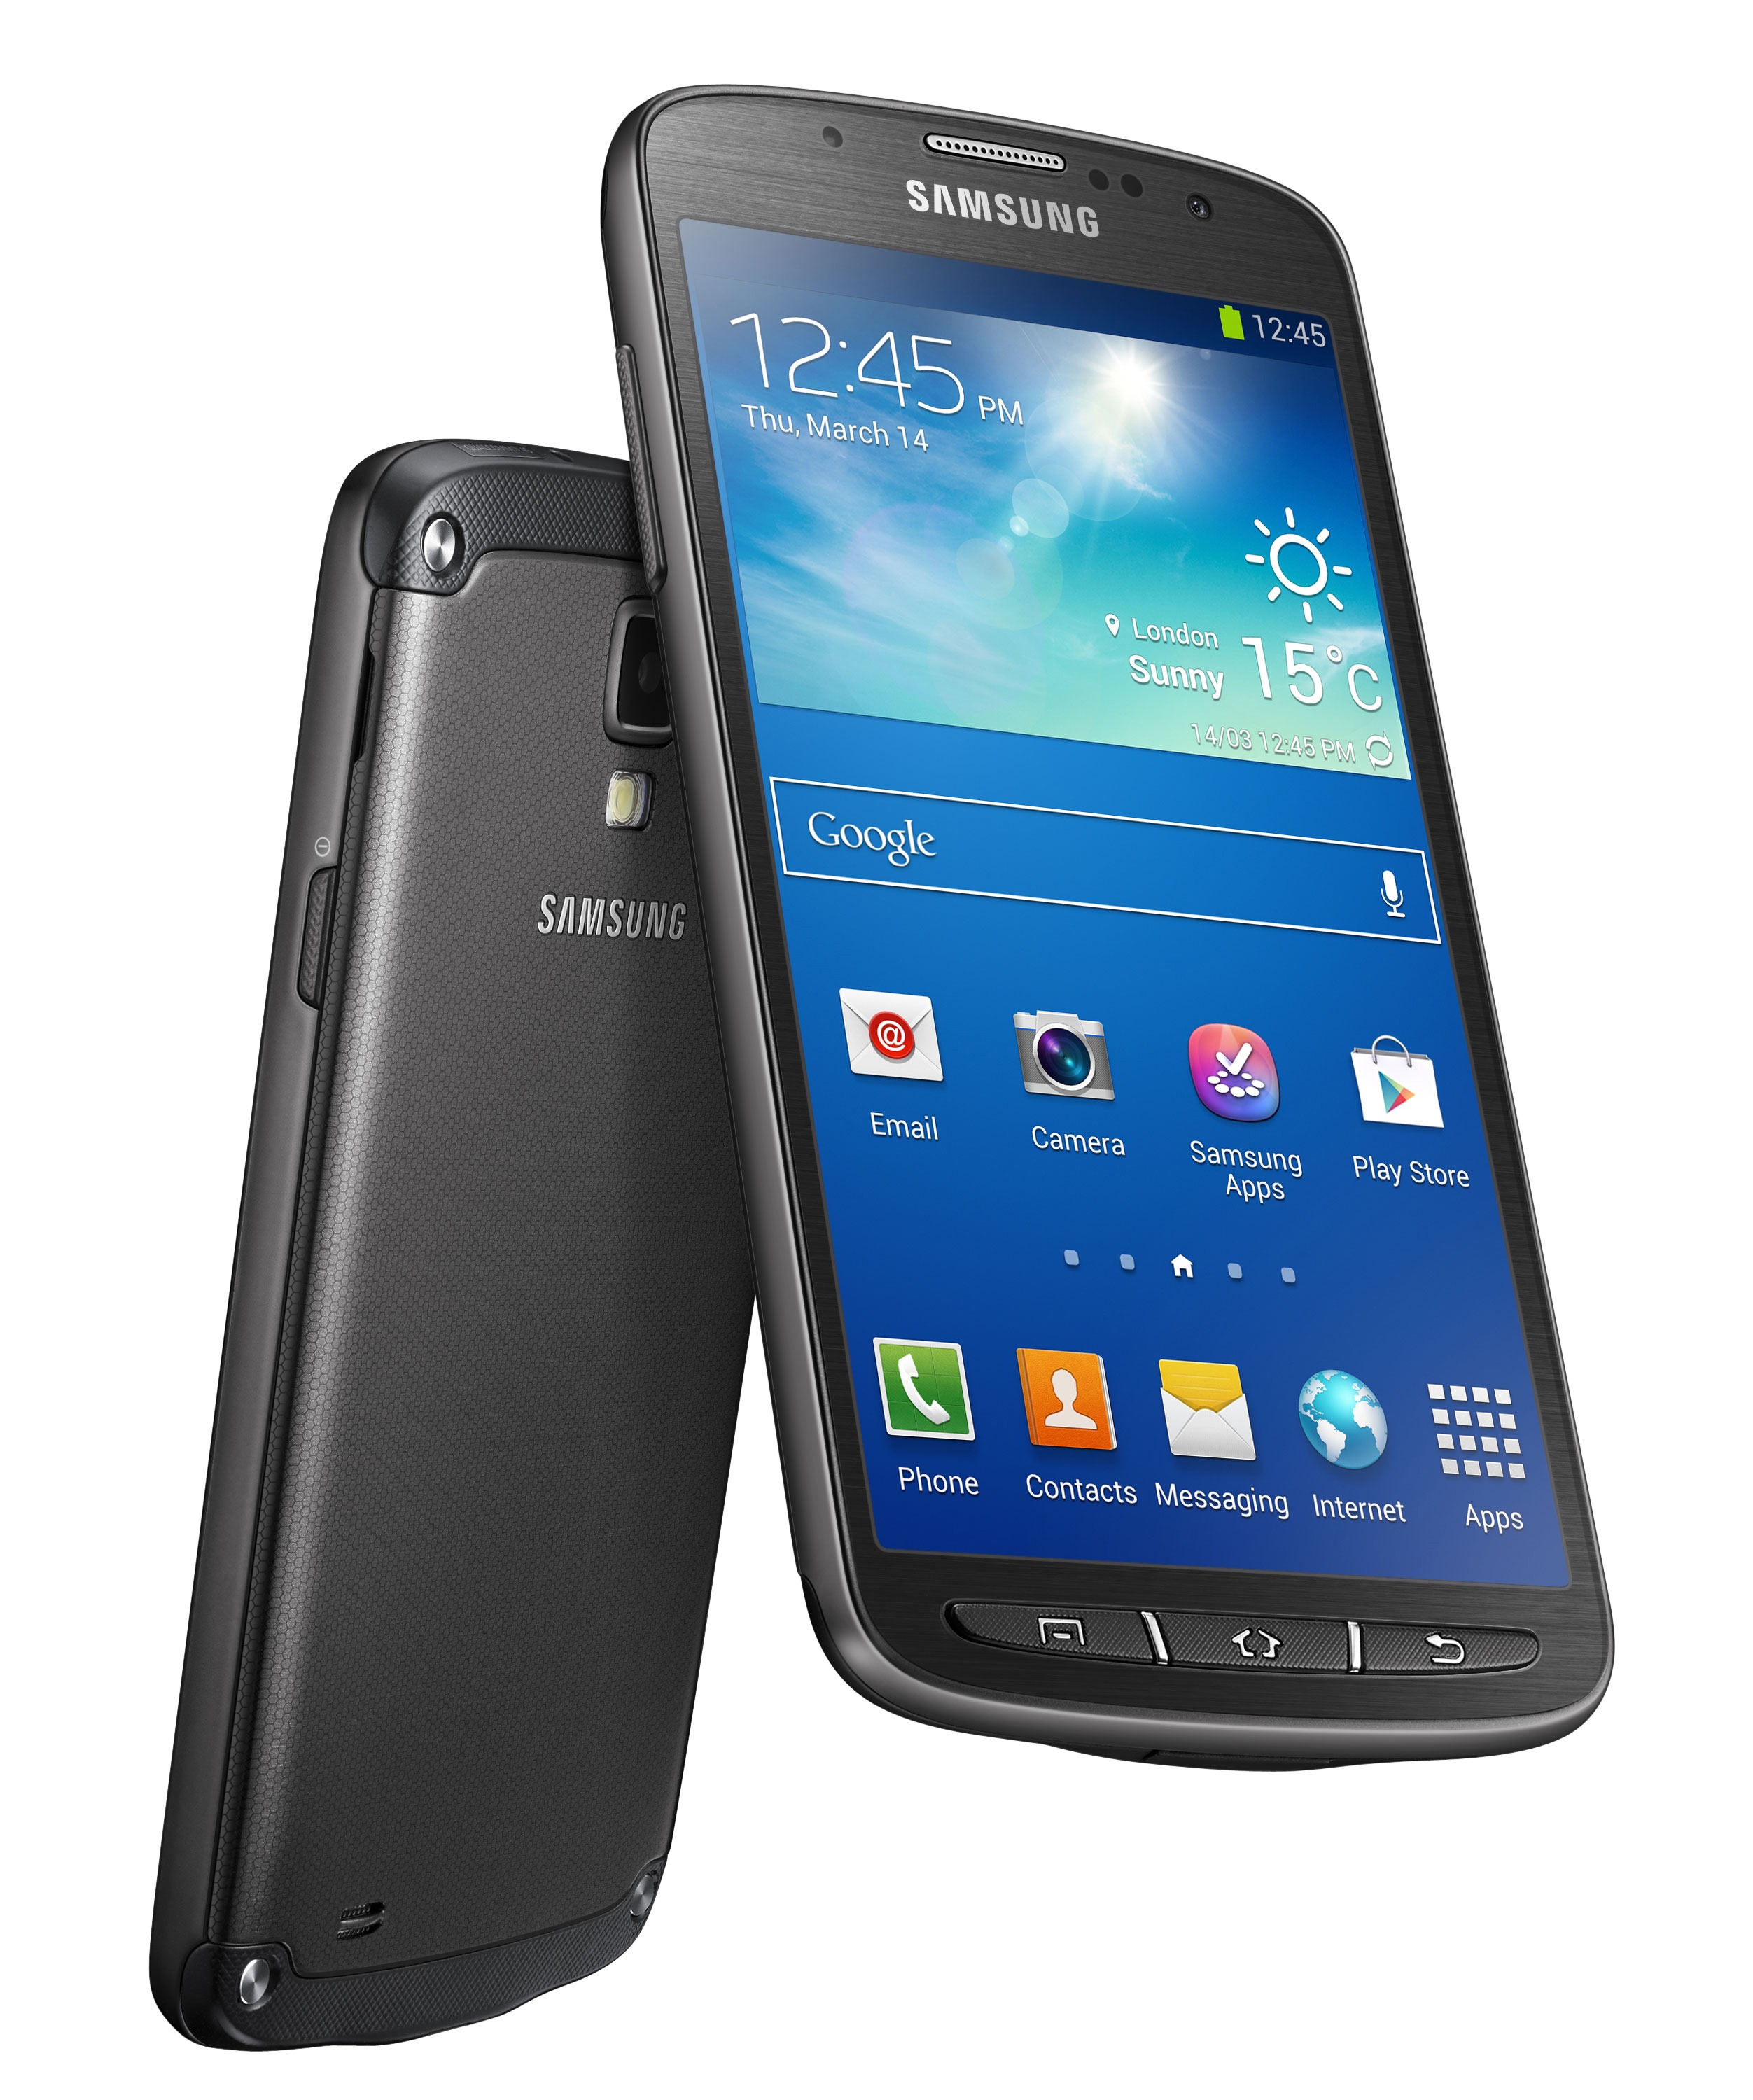 Samsung Galaxy S4 Active Gets Official: Same Great Specs (Mostly), IP67 Waterproof Rating, Available This Summer